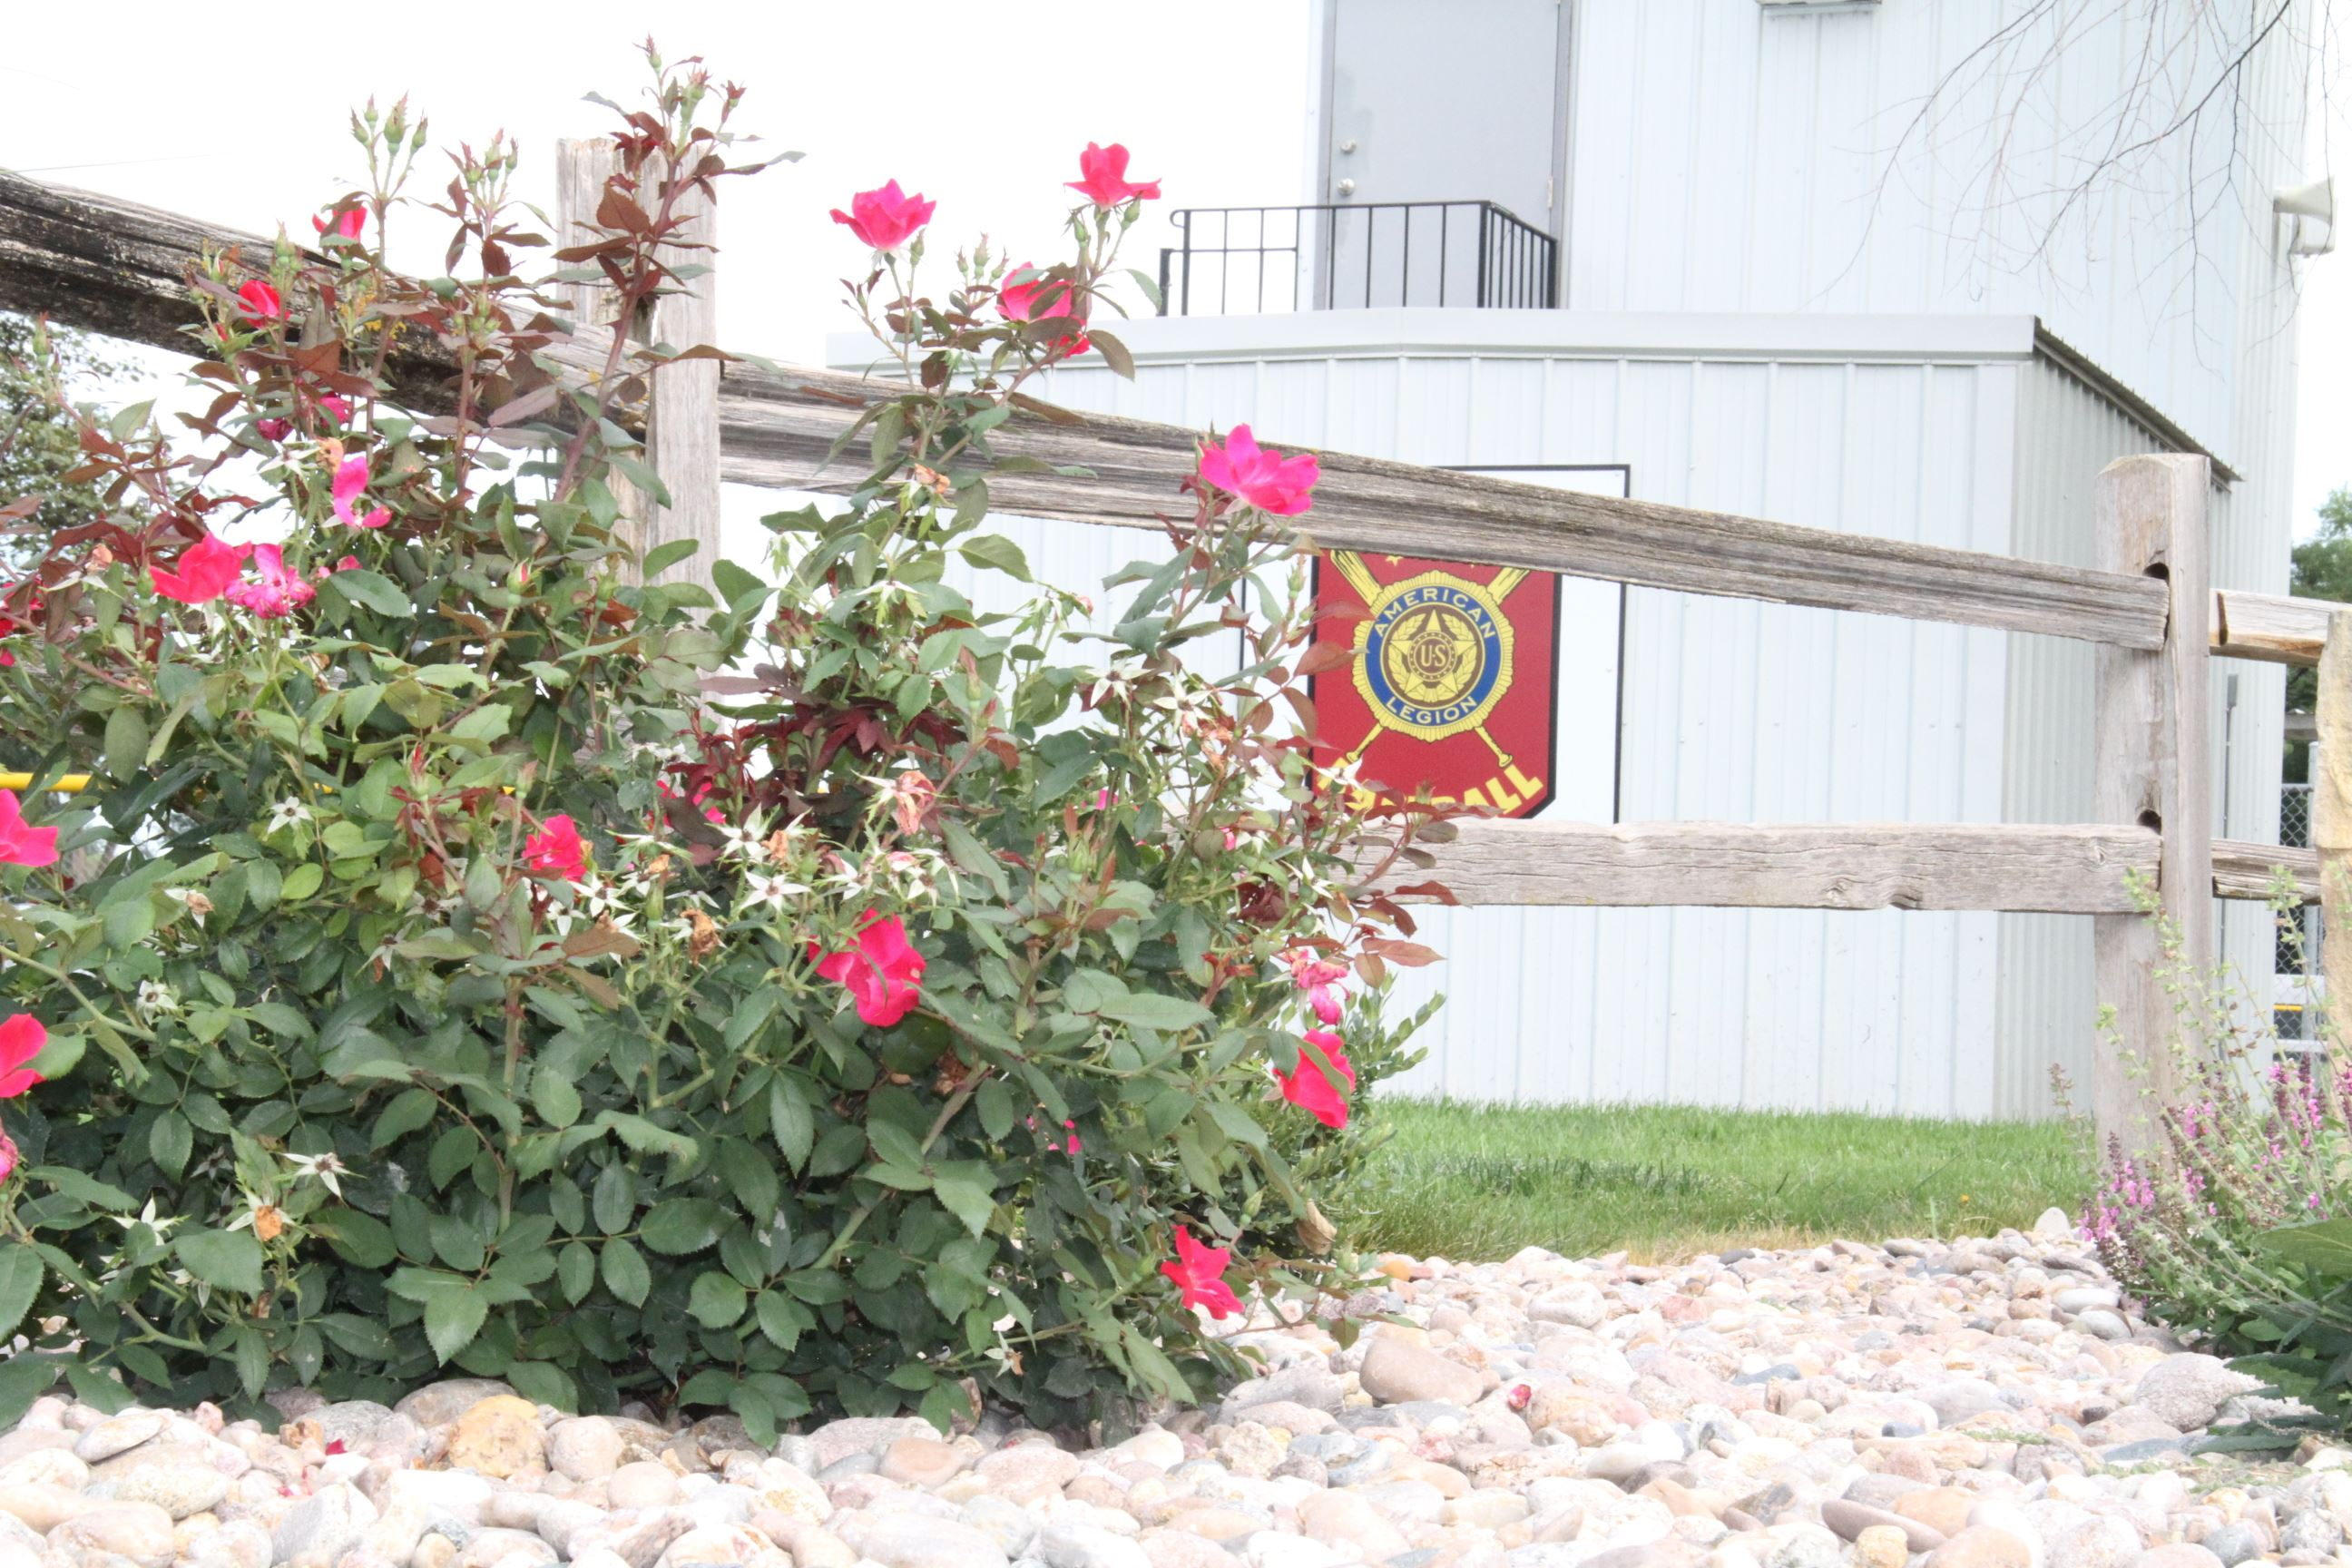 Flowers and Wooden Fence at Hebron Sports Complex